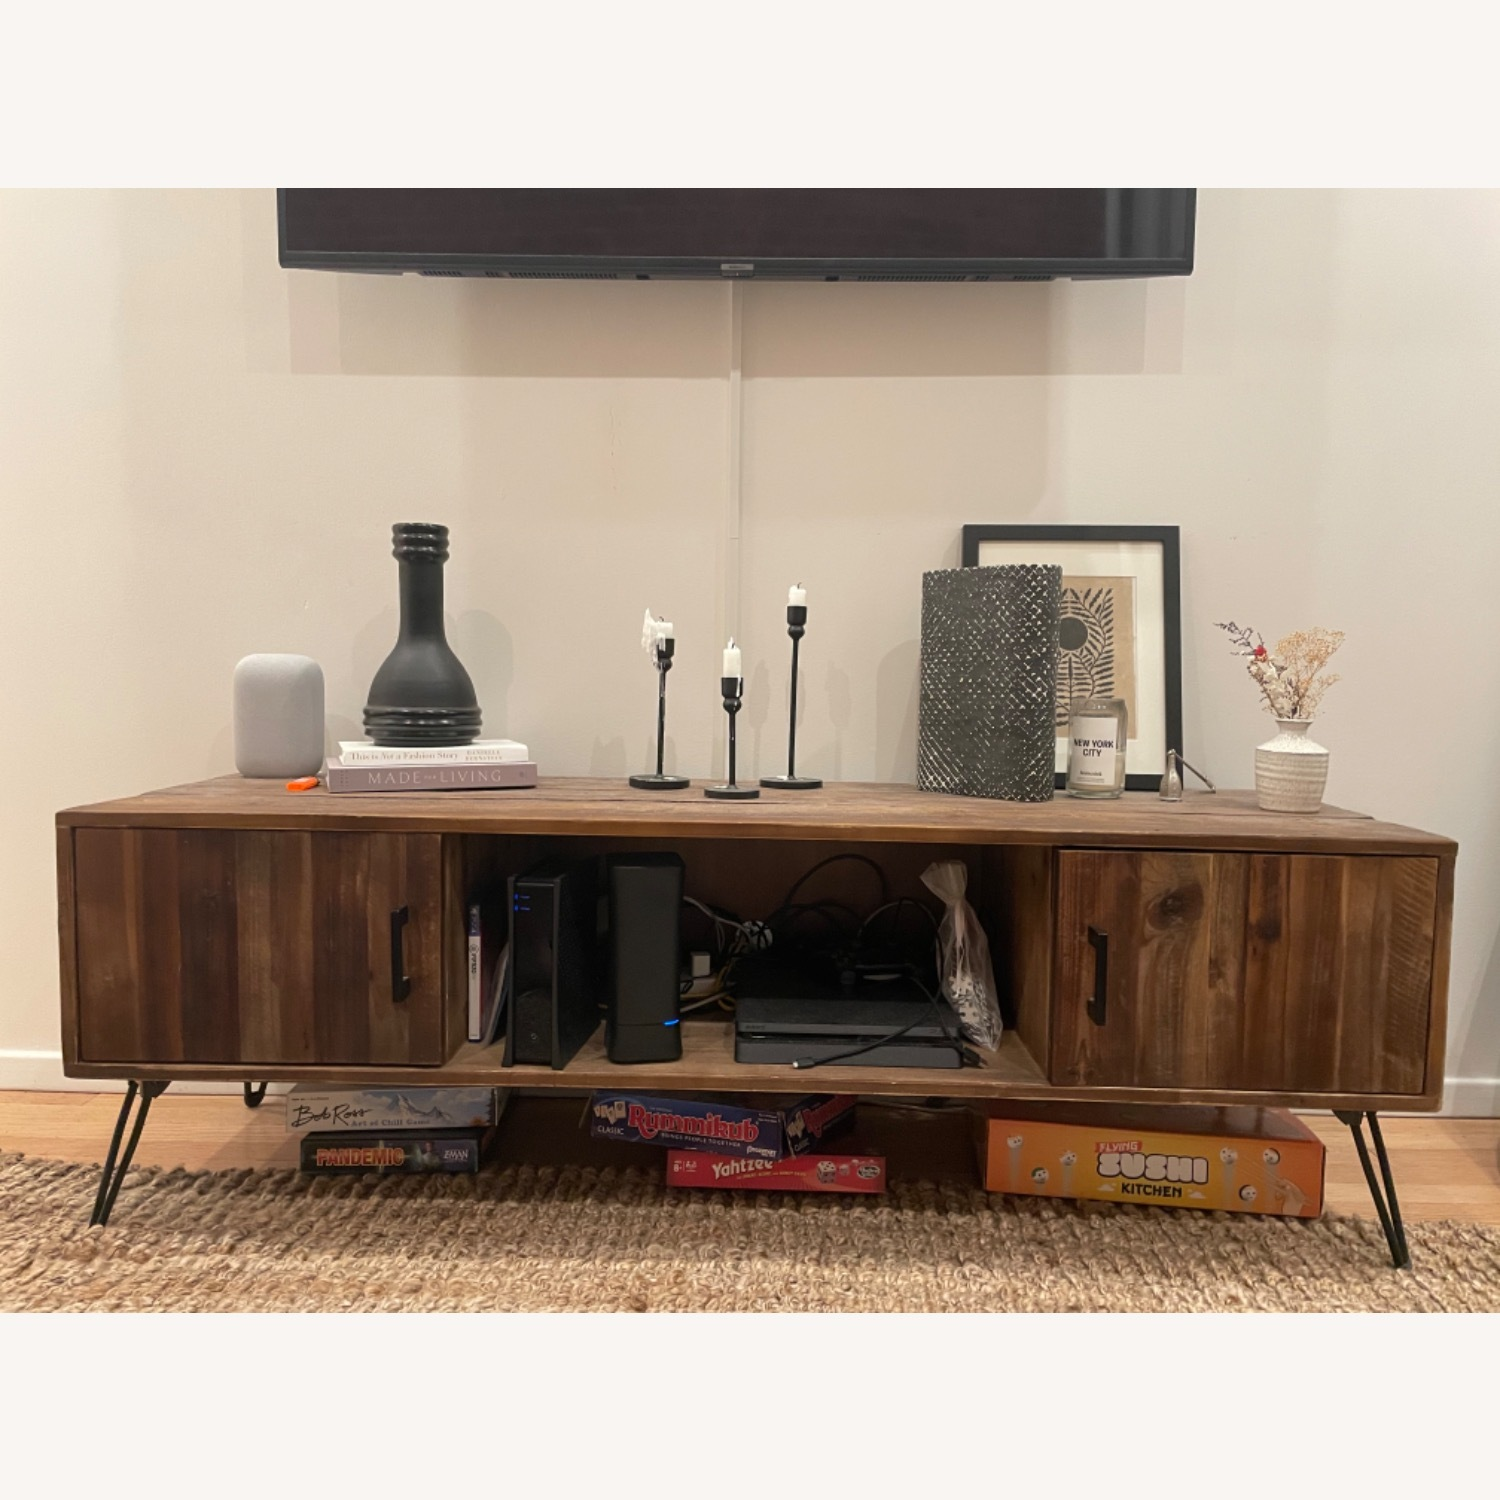 Wayfair Adger Solid Wood TV Stand - image-1